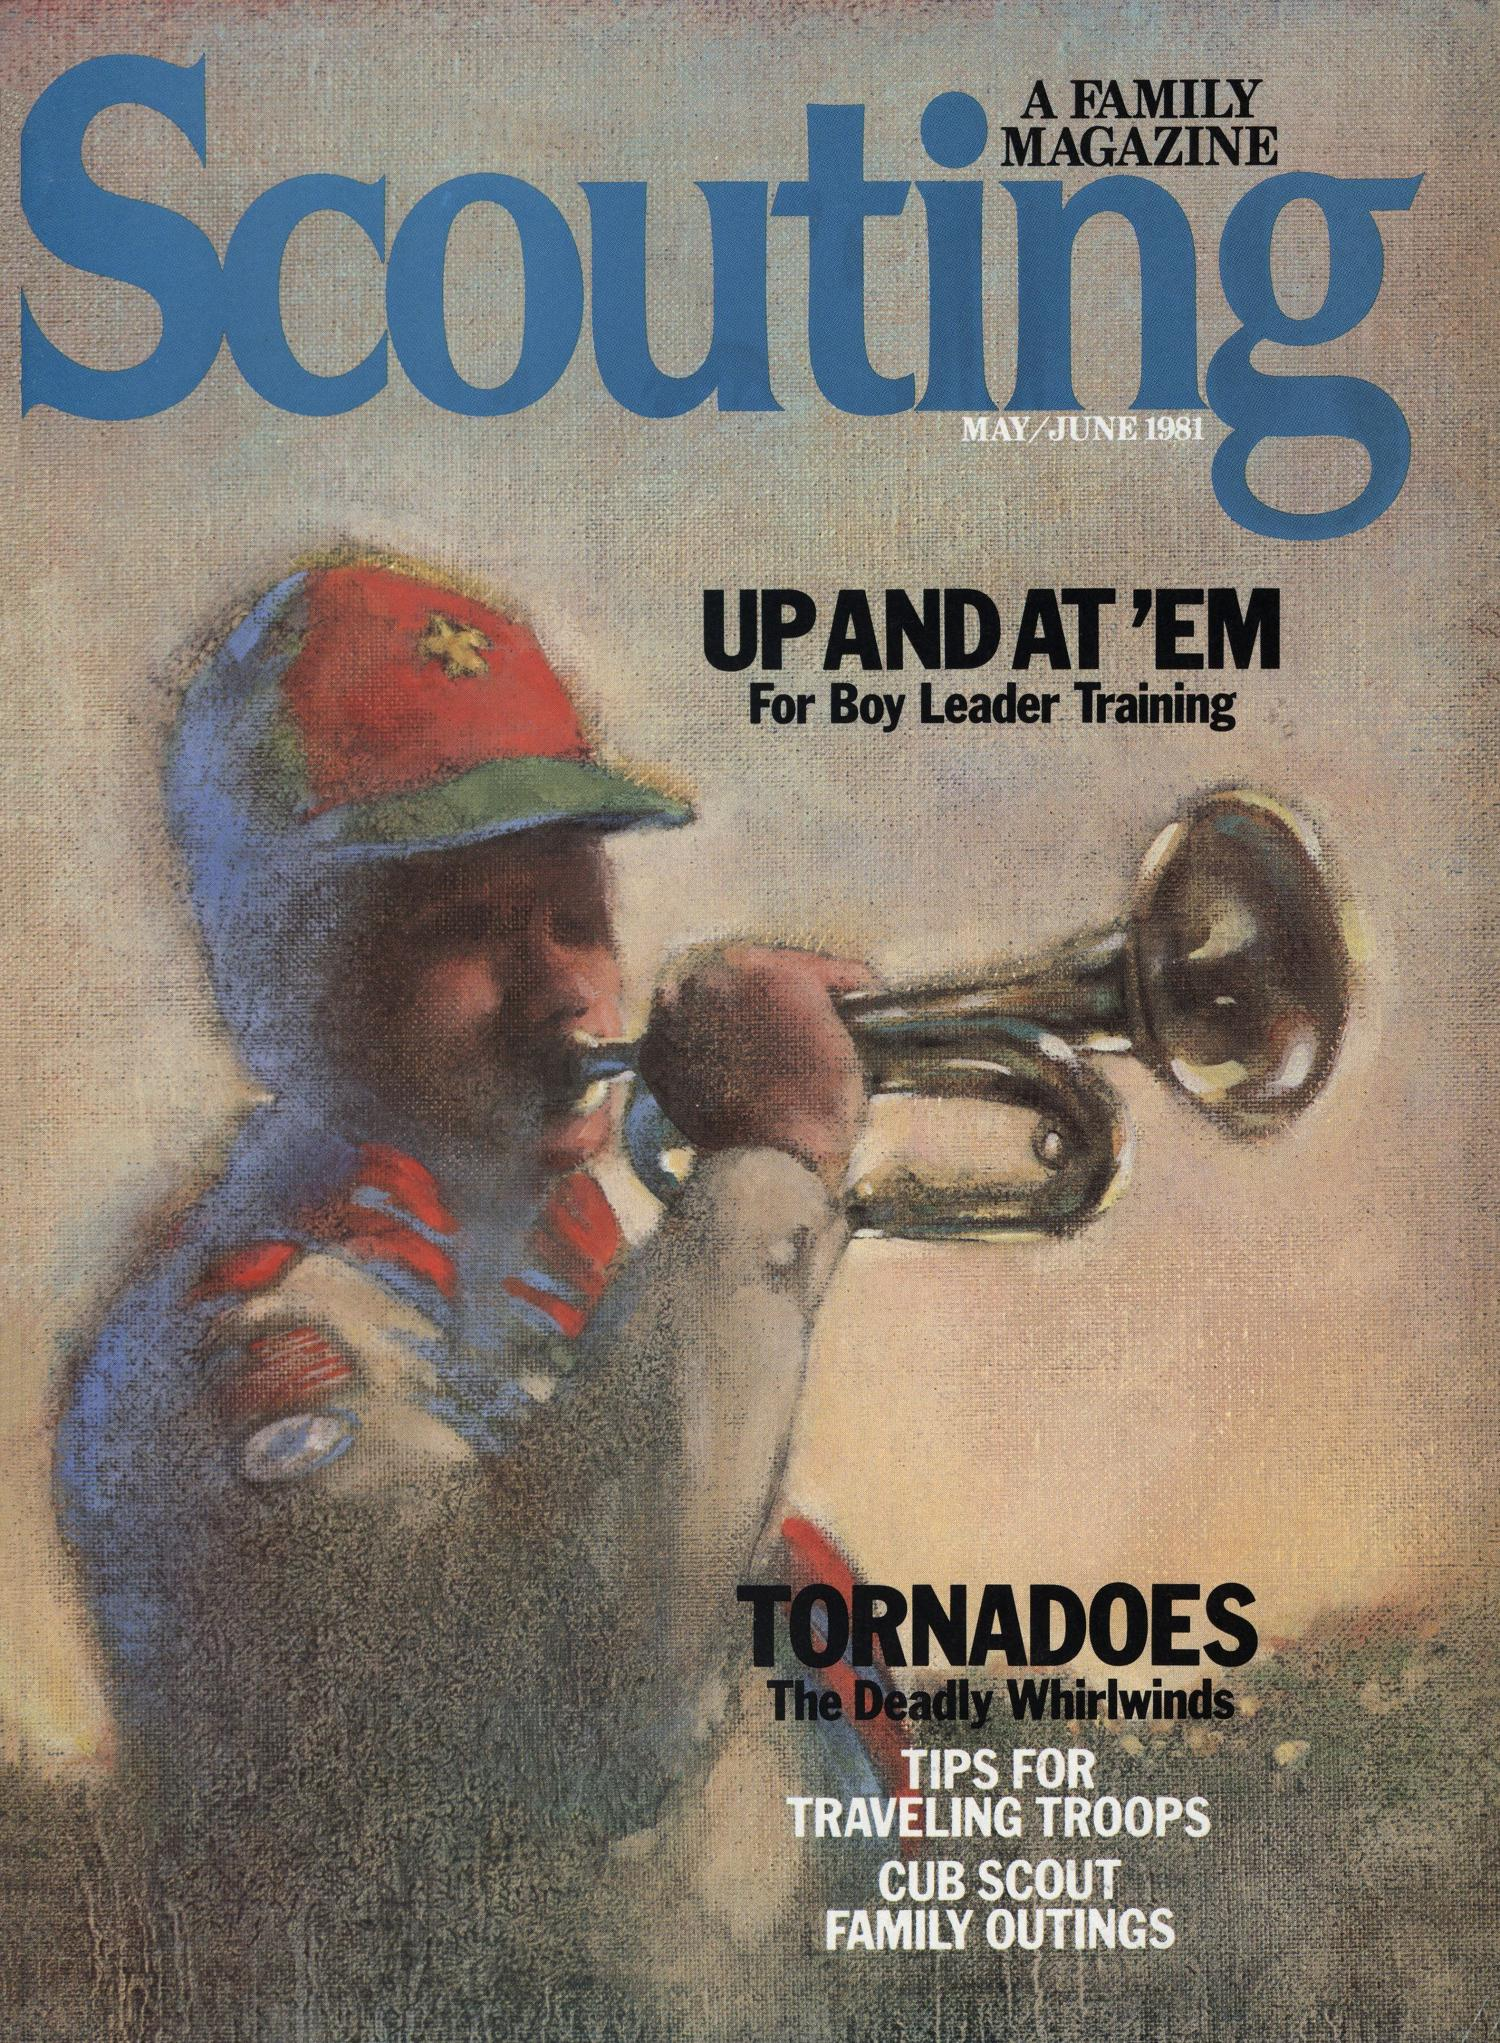 Scouting, Volume 69, Number 3, May-June 1981                                                                                                      Front Cover